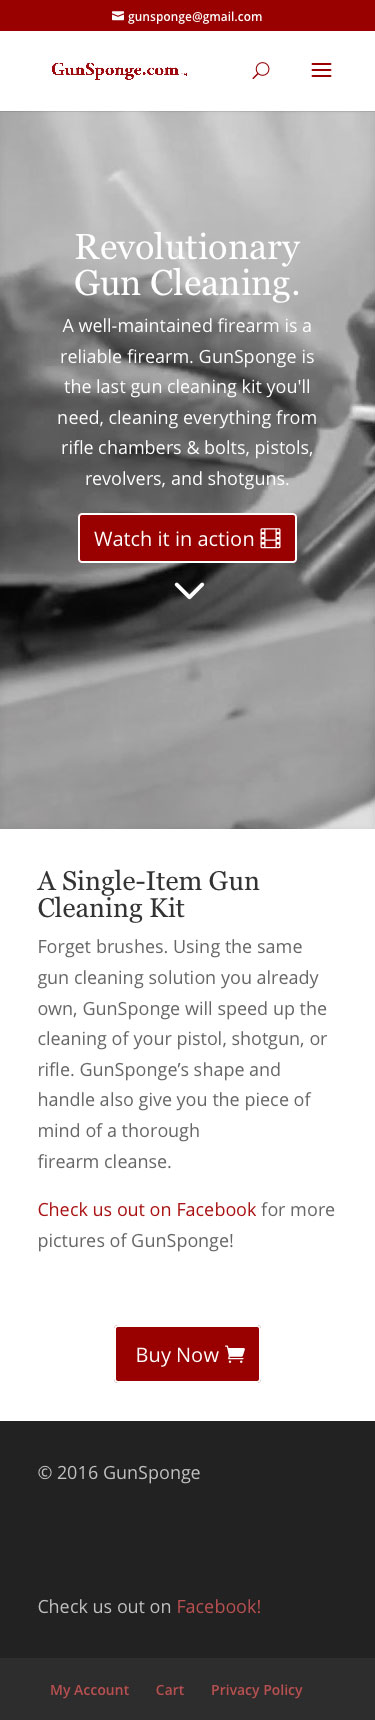 Gunsponge Mobile Home Page Screenshot